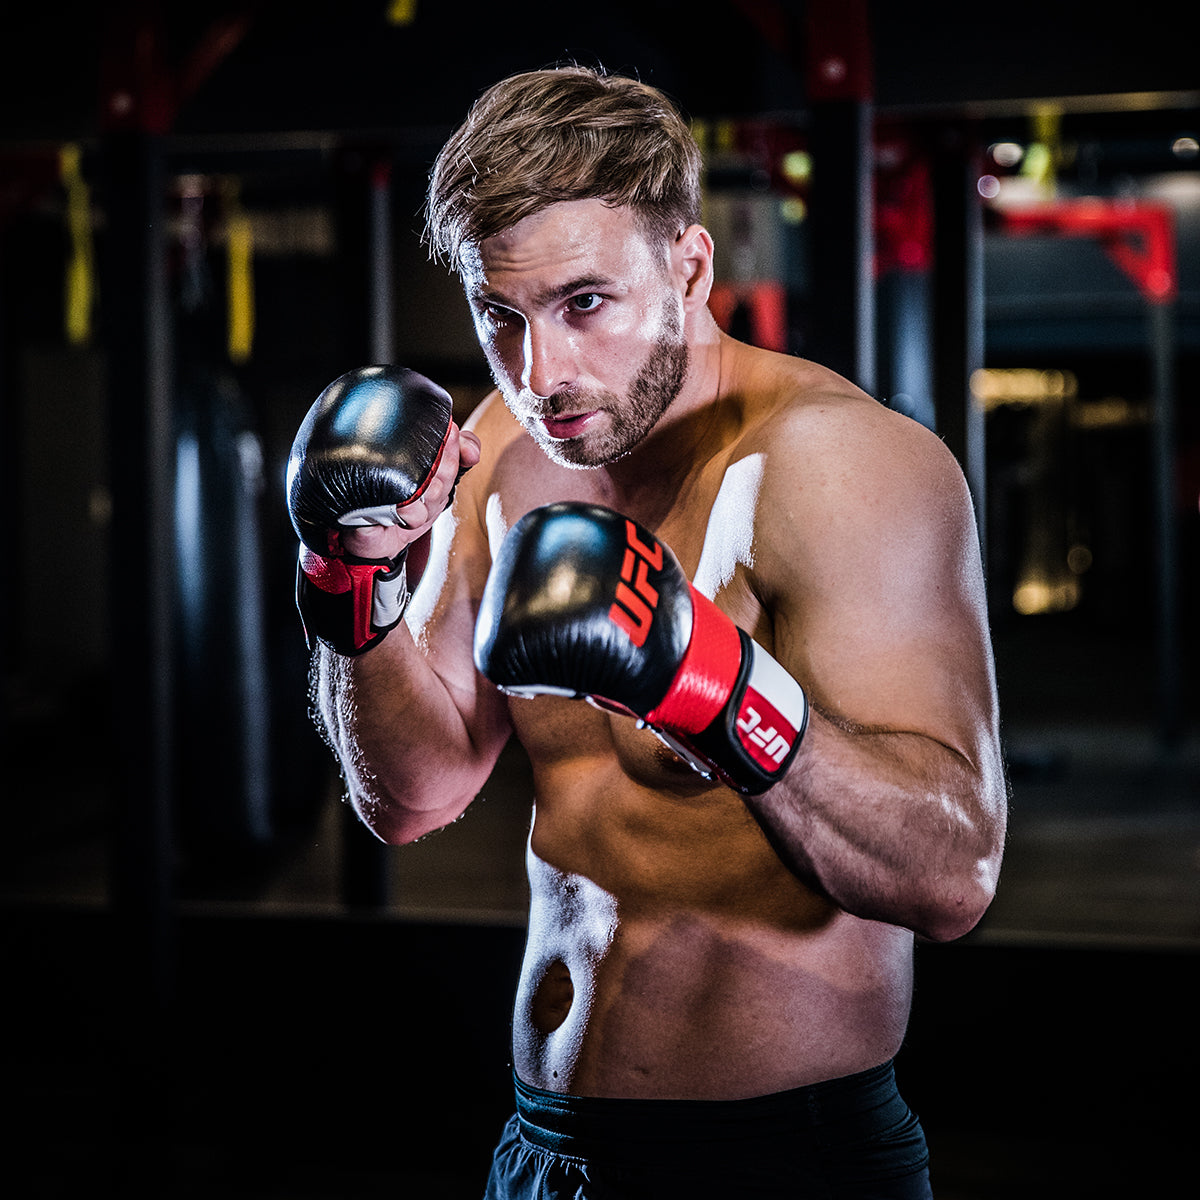 Athlete ready to spar while wearing the UFC Pro MMA Sparring Gloves